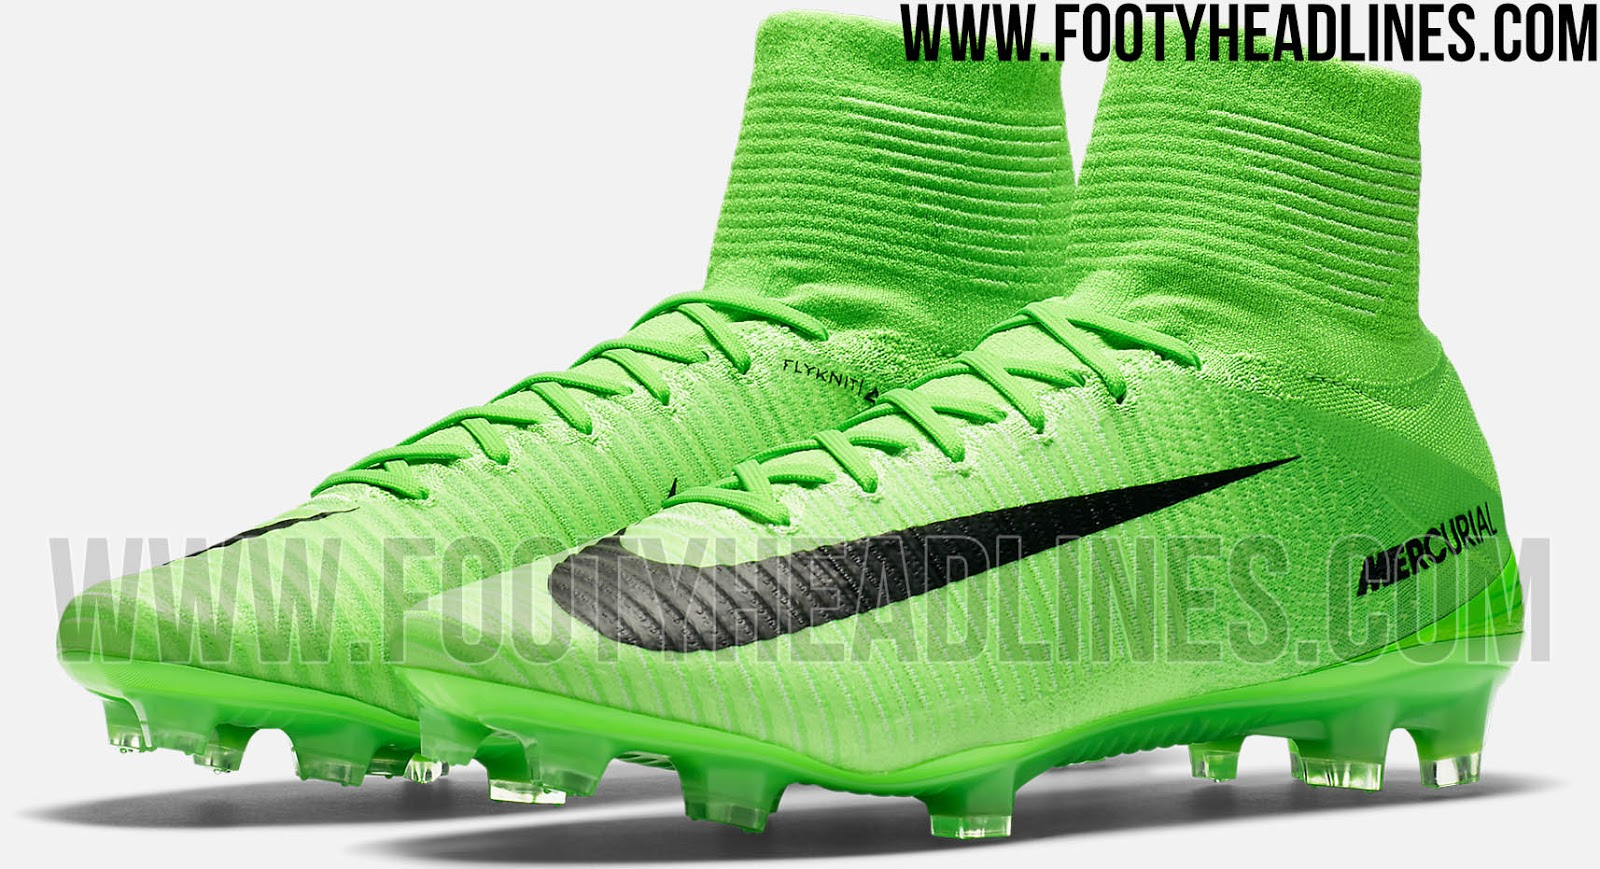 separation shoes bb6e1 9d56e Known as Electric Green Black, the green Nike Mercurial Superfly 5 2017 .  ...